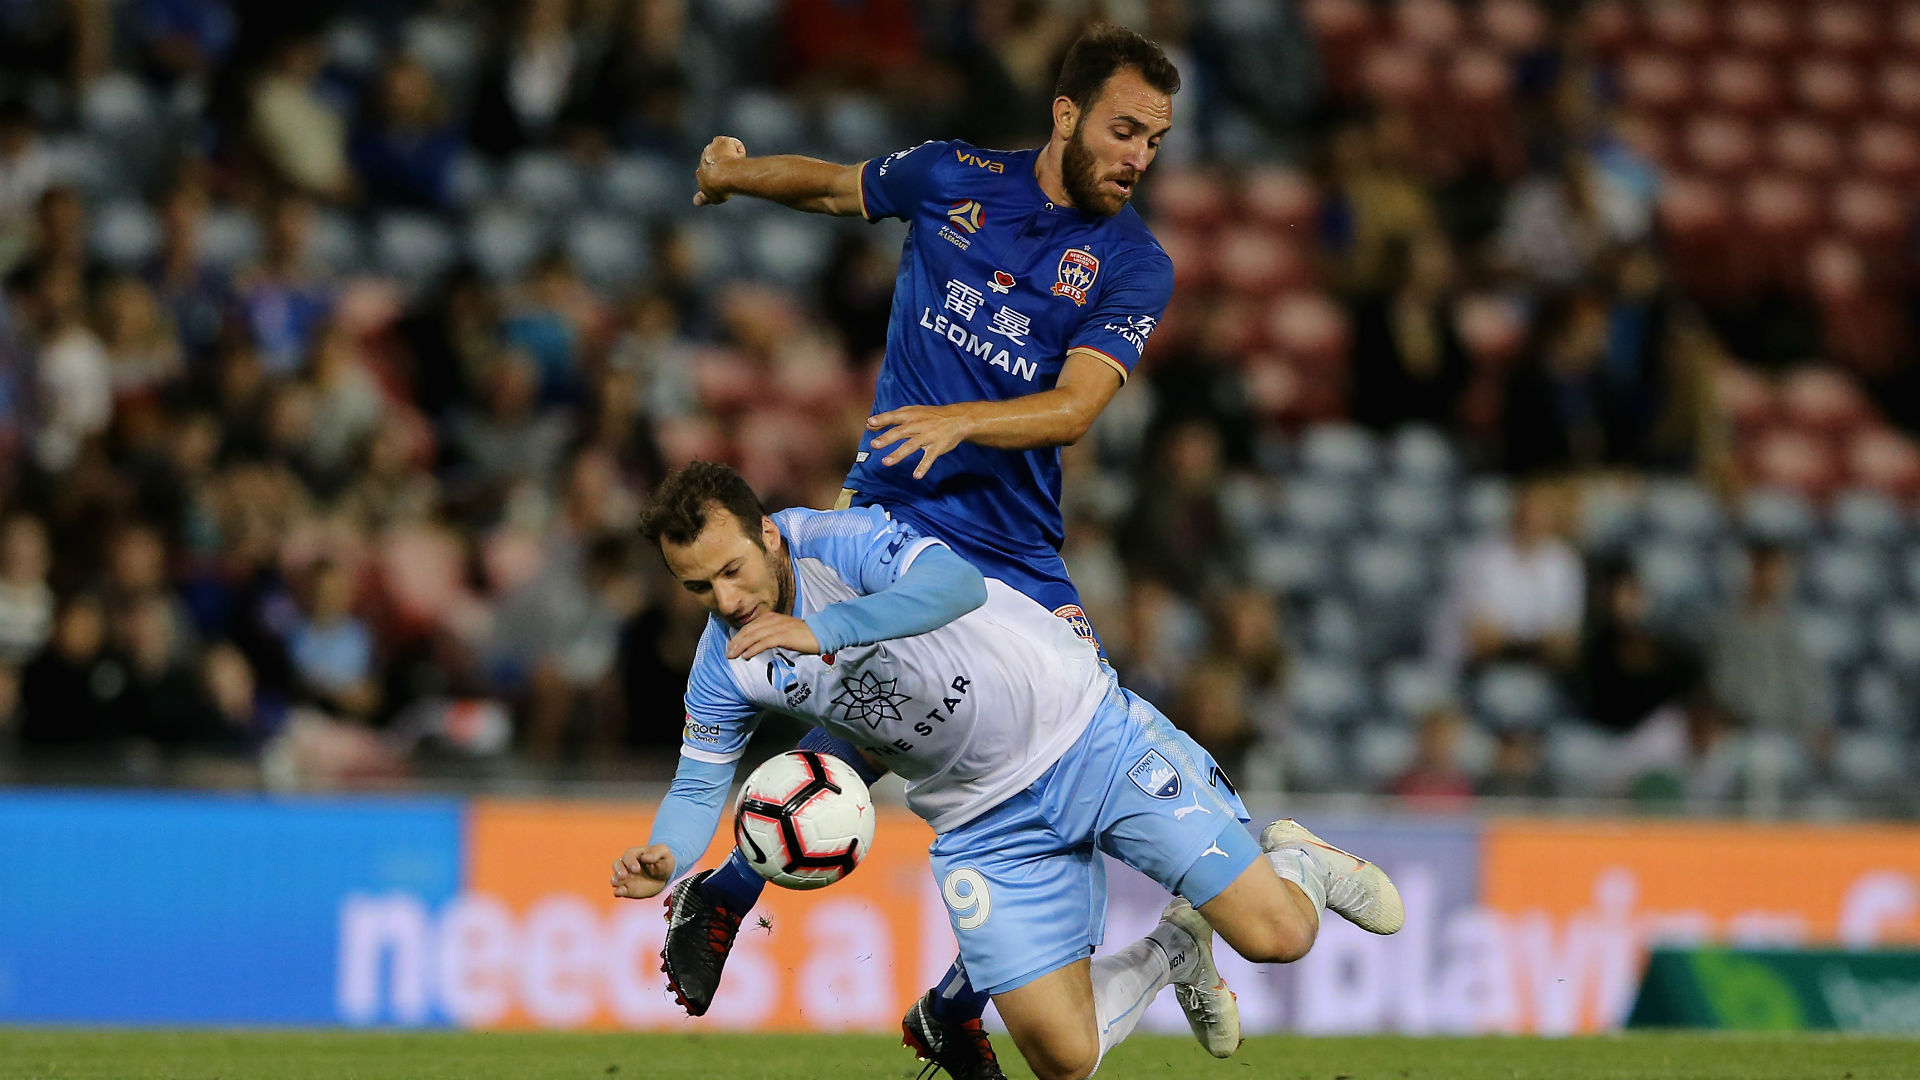 Sydney held by Jets after late leveller